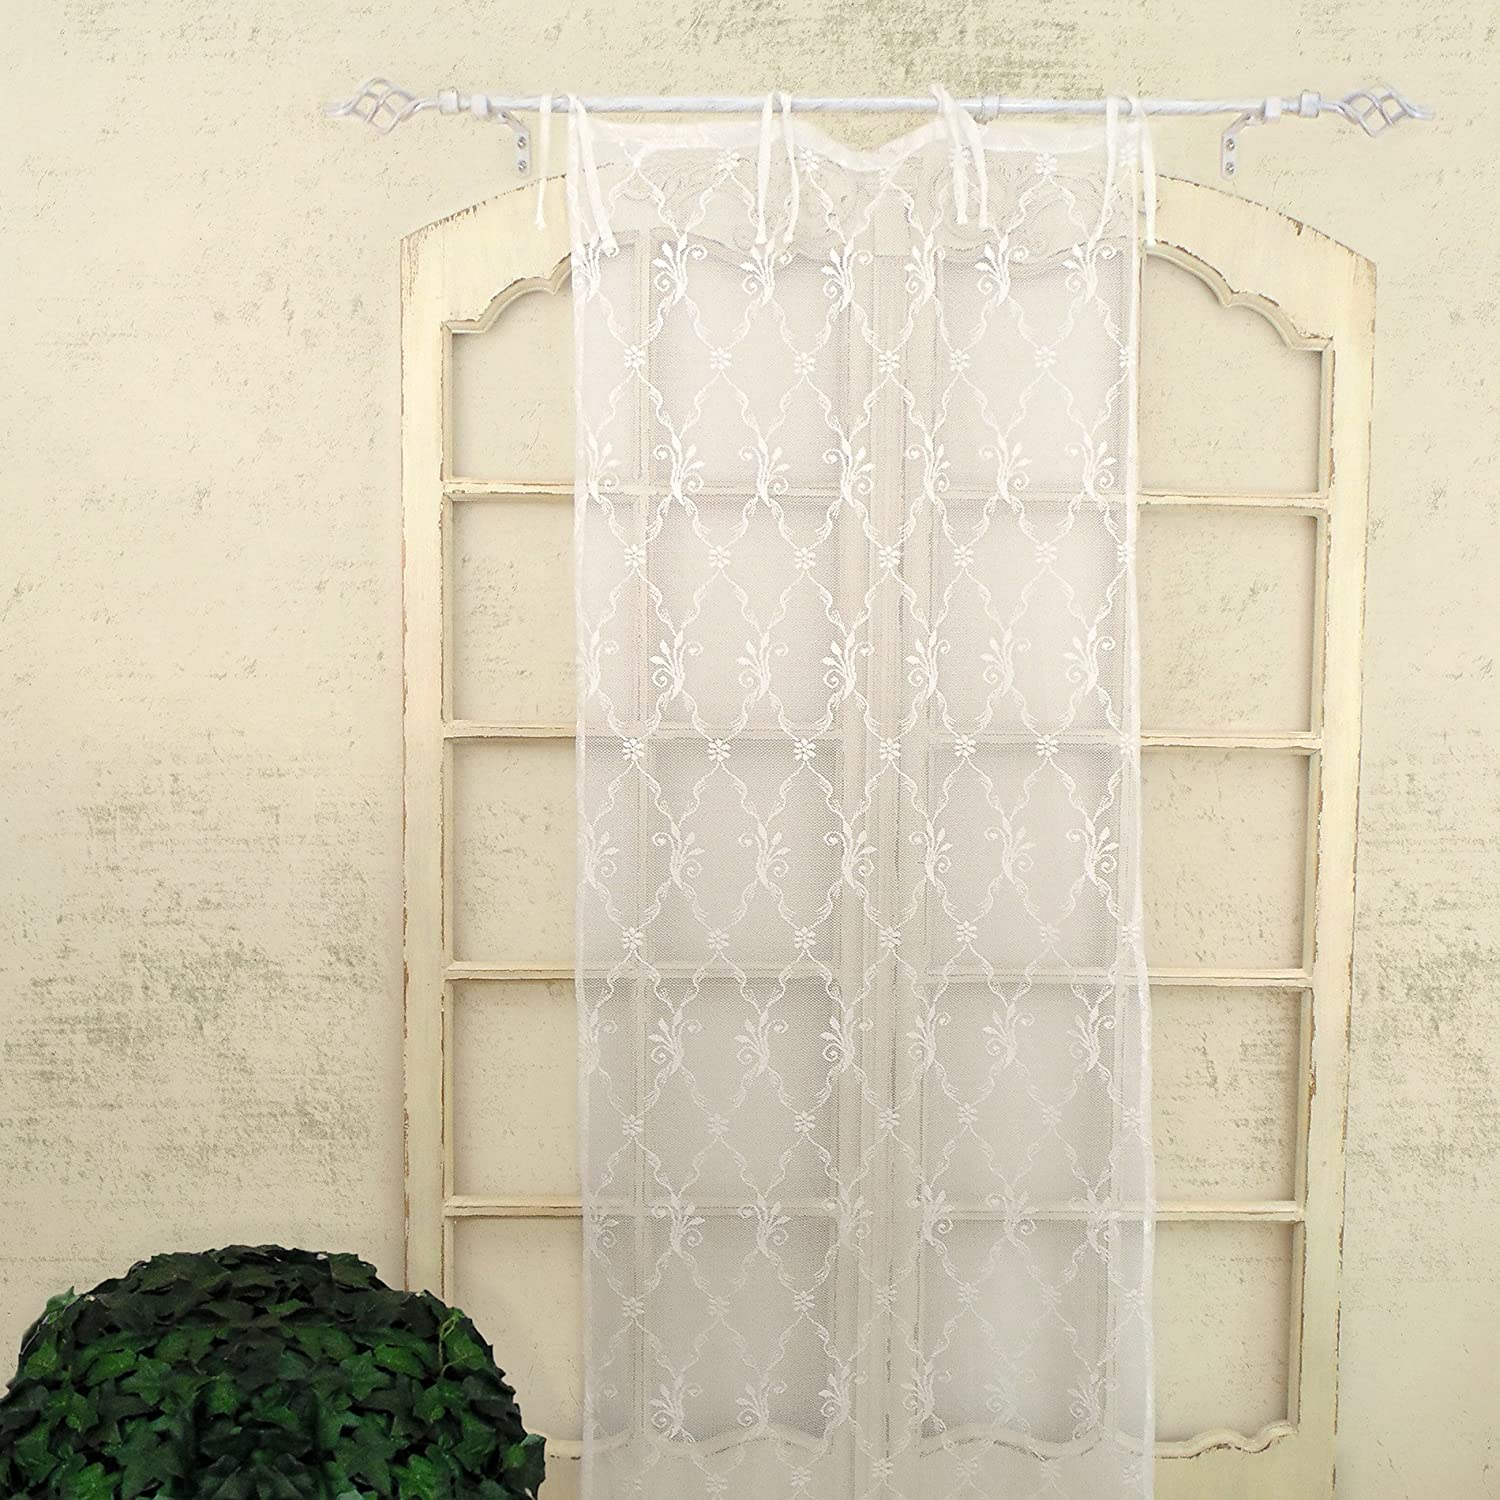 Tenda finestra in Pizzo Poliestere Shabby Chic Poly-Astre Collection 60 x 220 Colore Bianco AT17